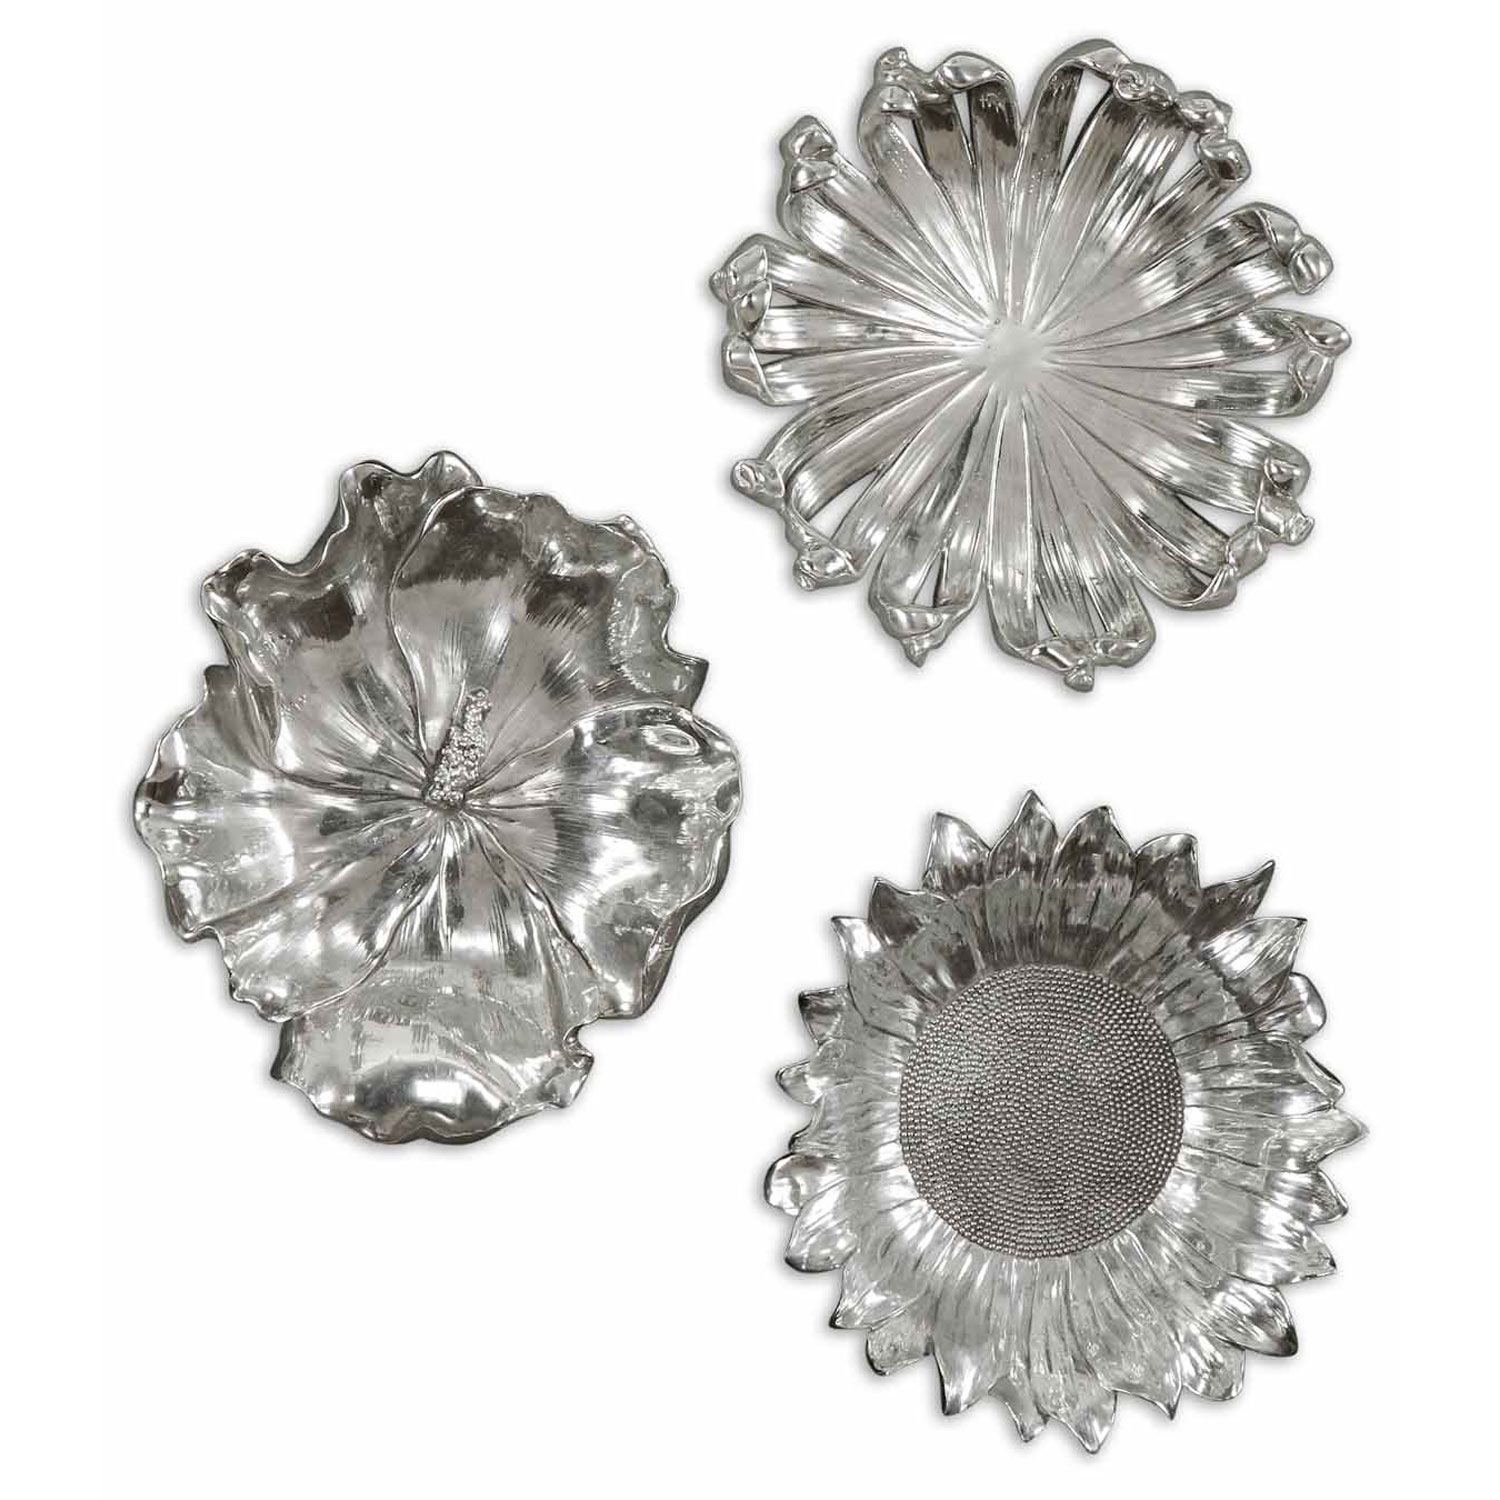 Uttermost Silver Flowers Metal Wall Art, Set of Three | Wall art ...